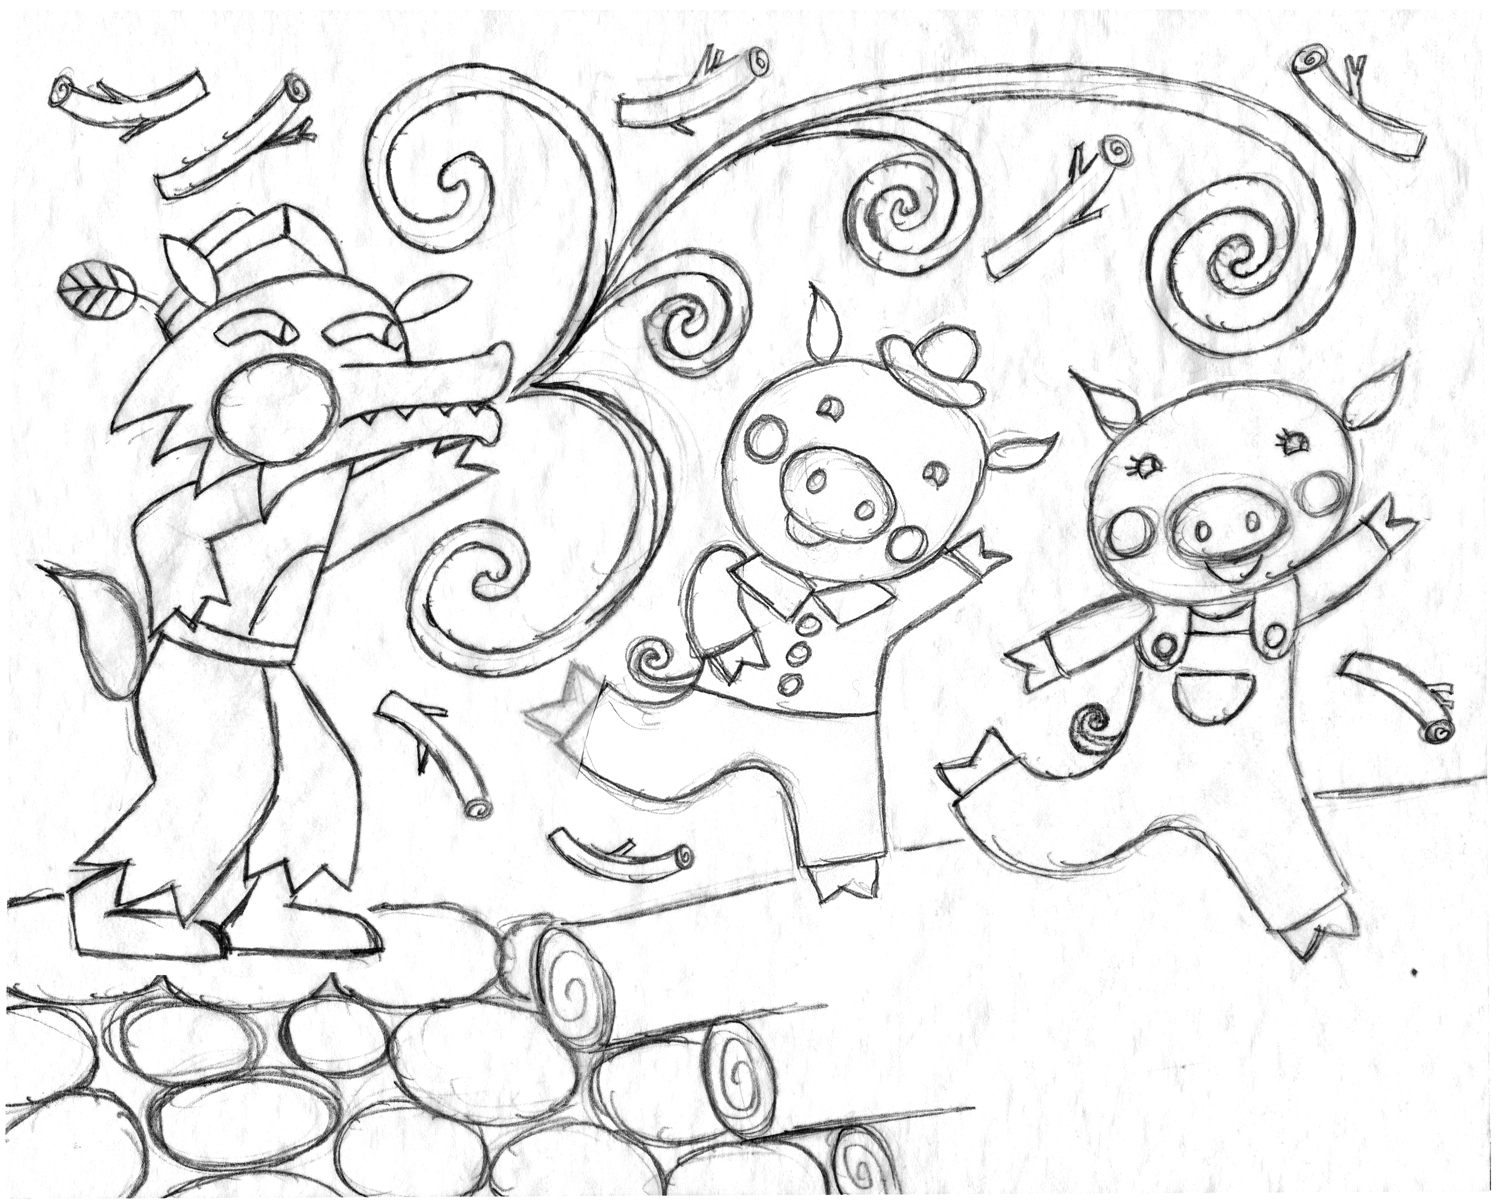 Coloring pages 3 little pigs - Three Little Pigs Sketch